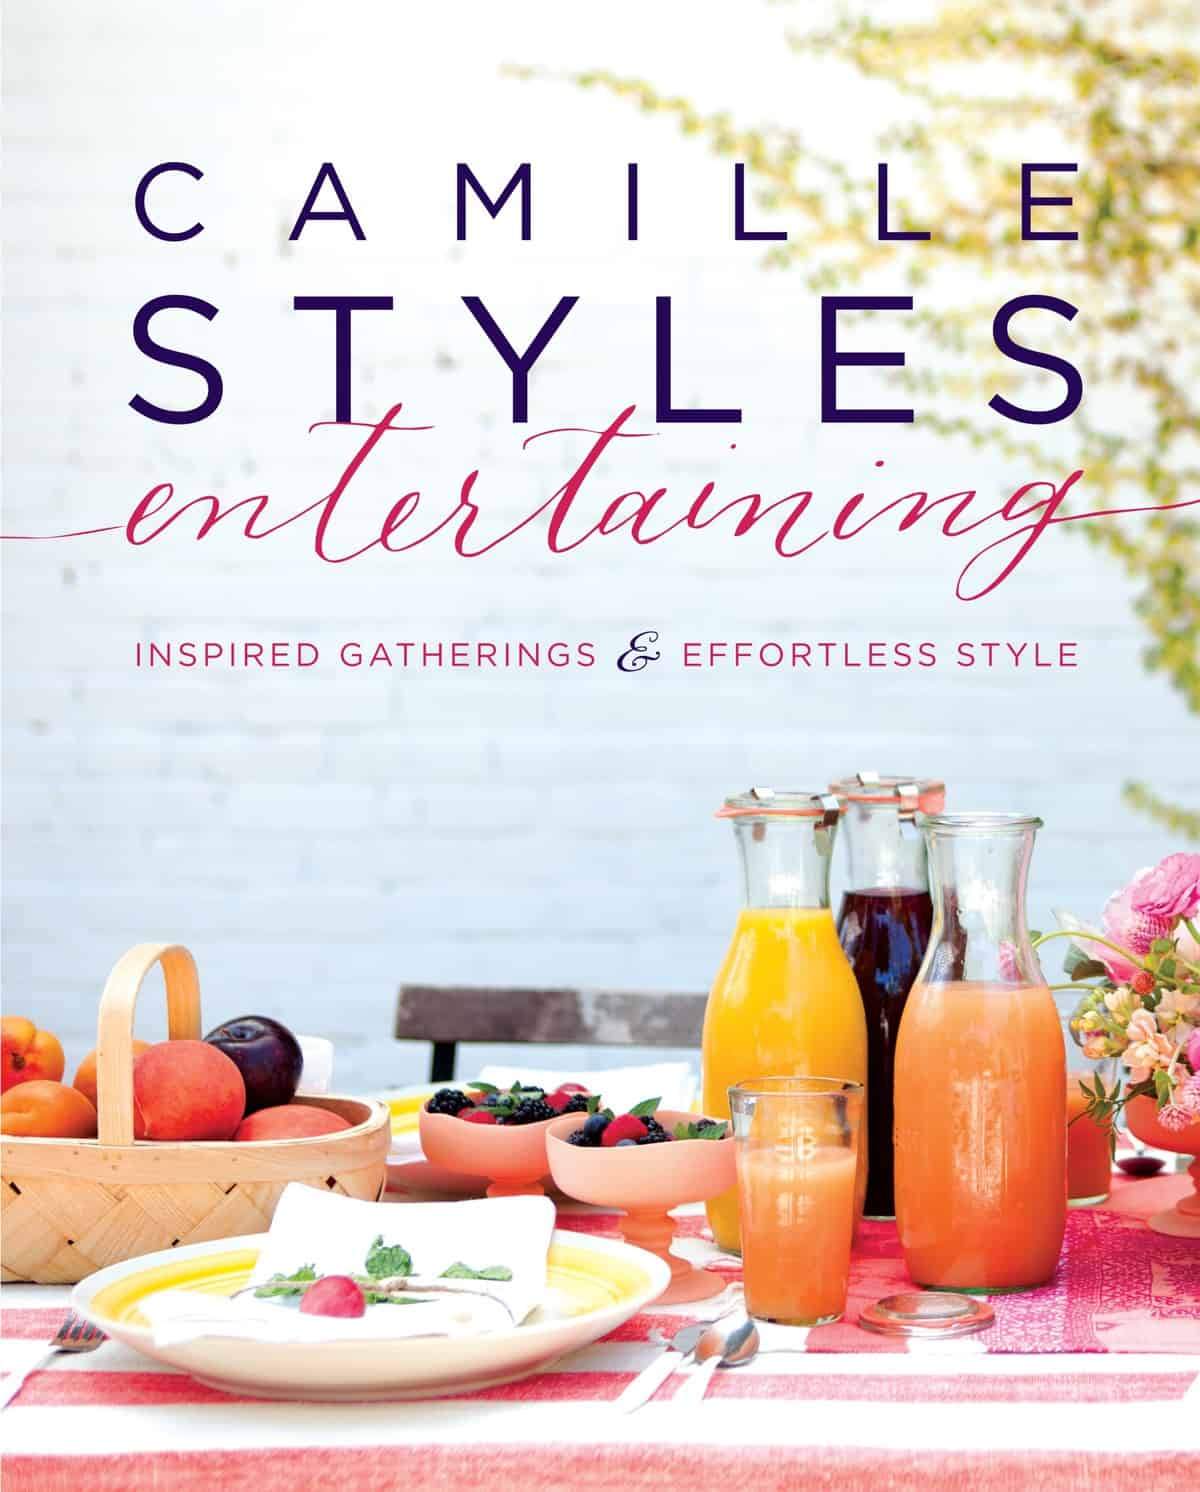 CamilleStylesEntertaining hc c